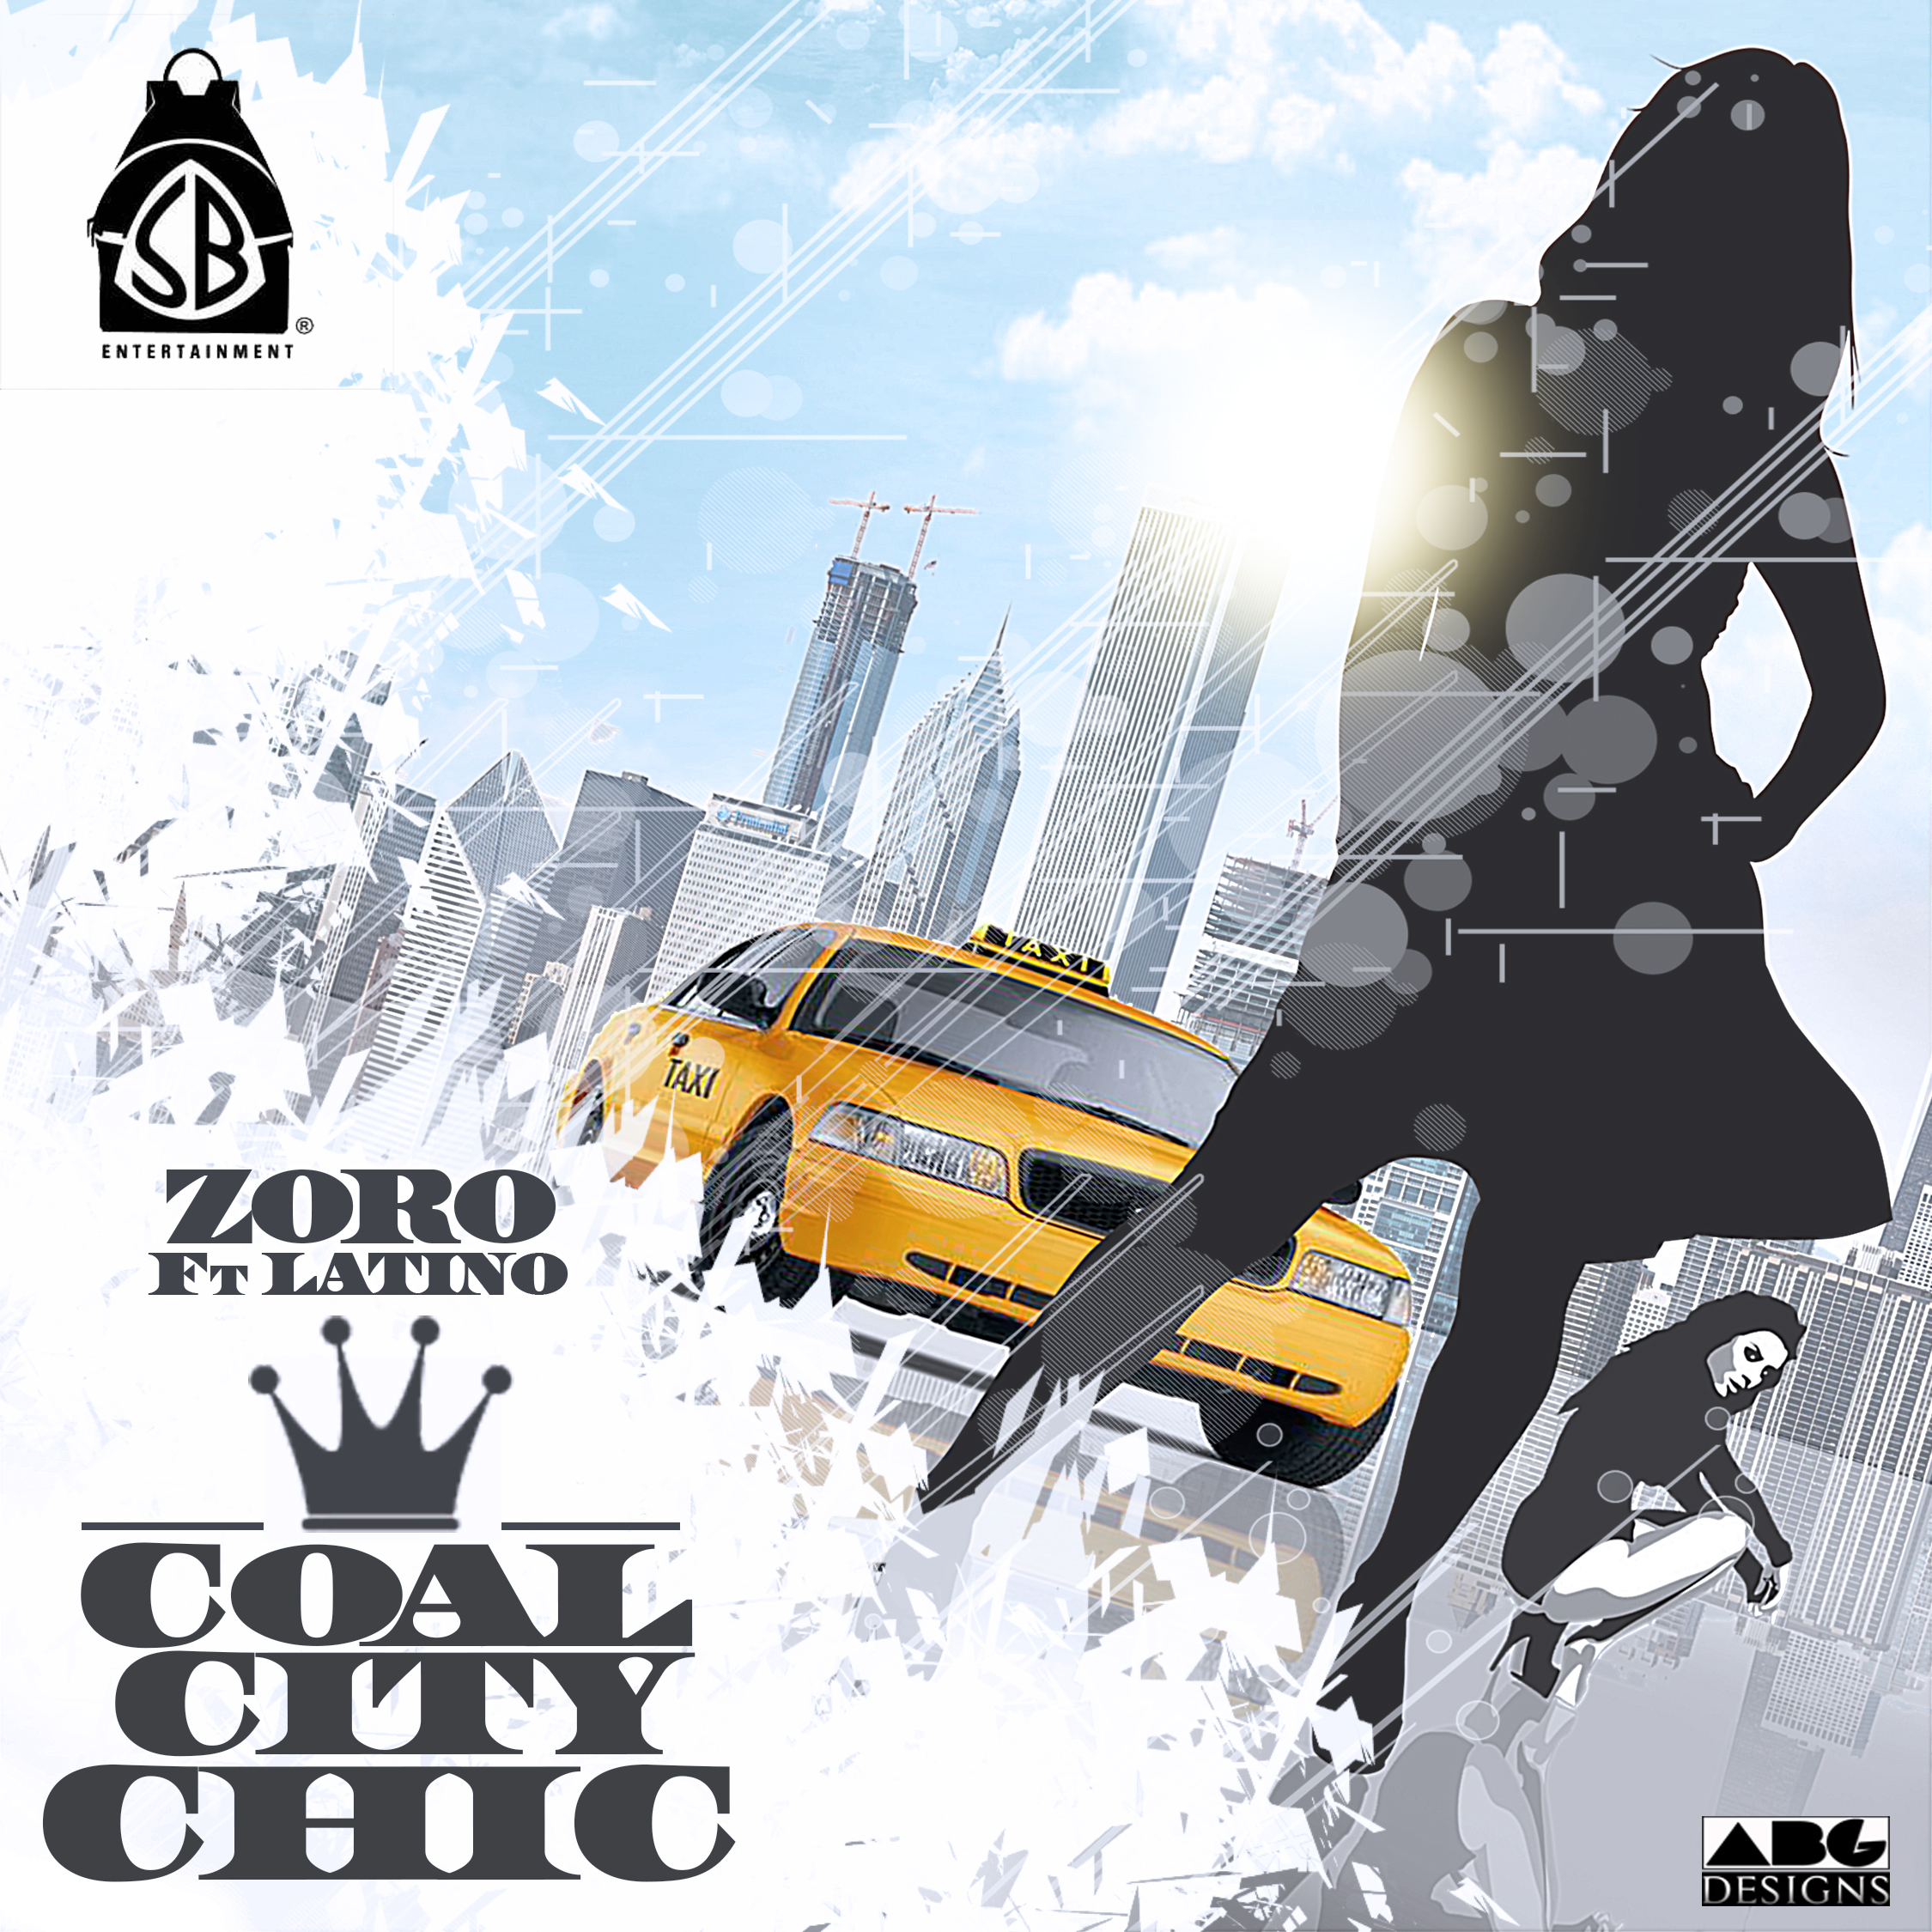 Zoro - Coal City Chic ft. Latino-Art